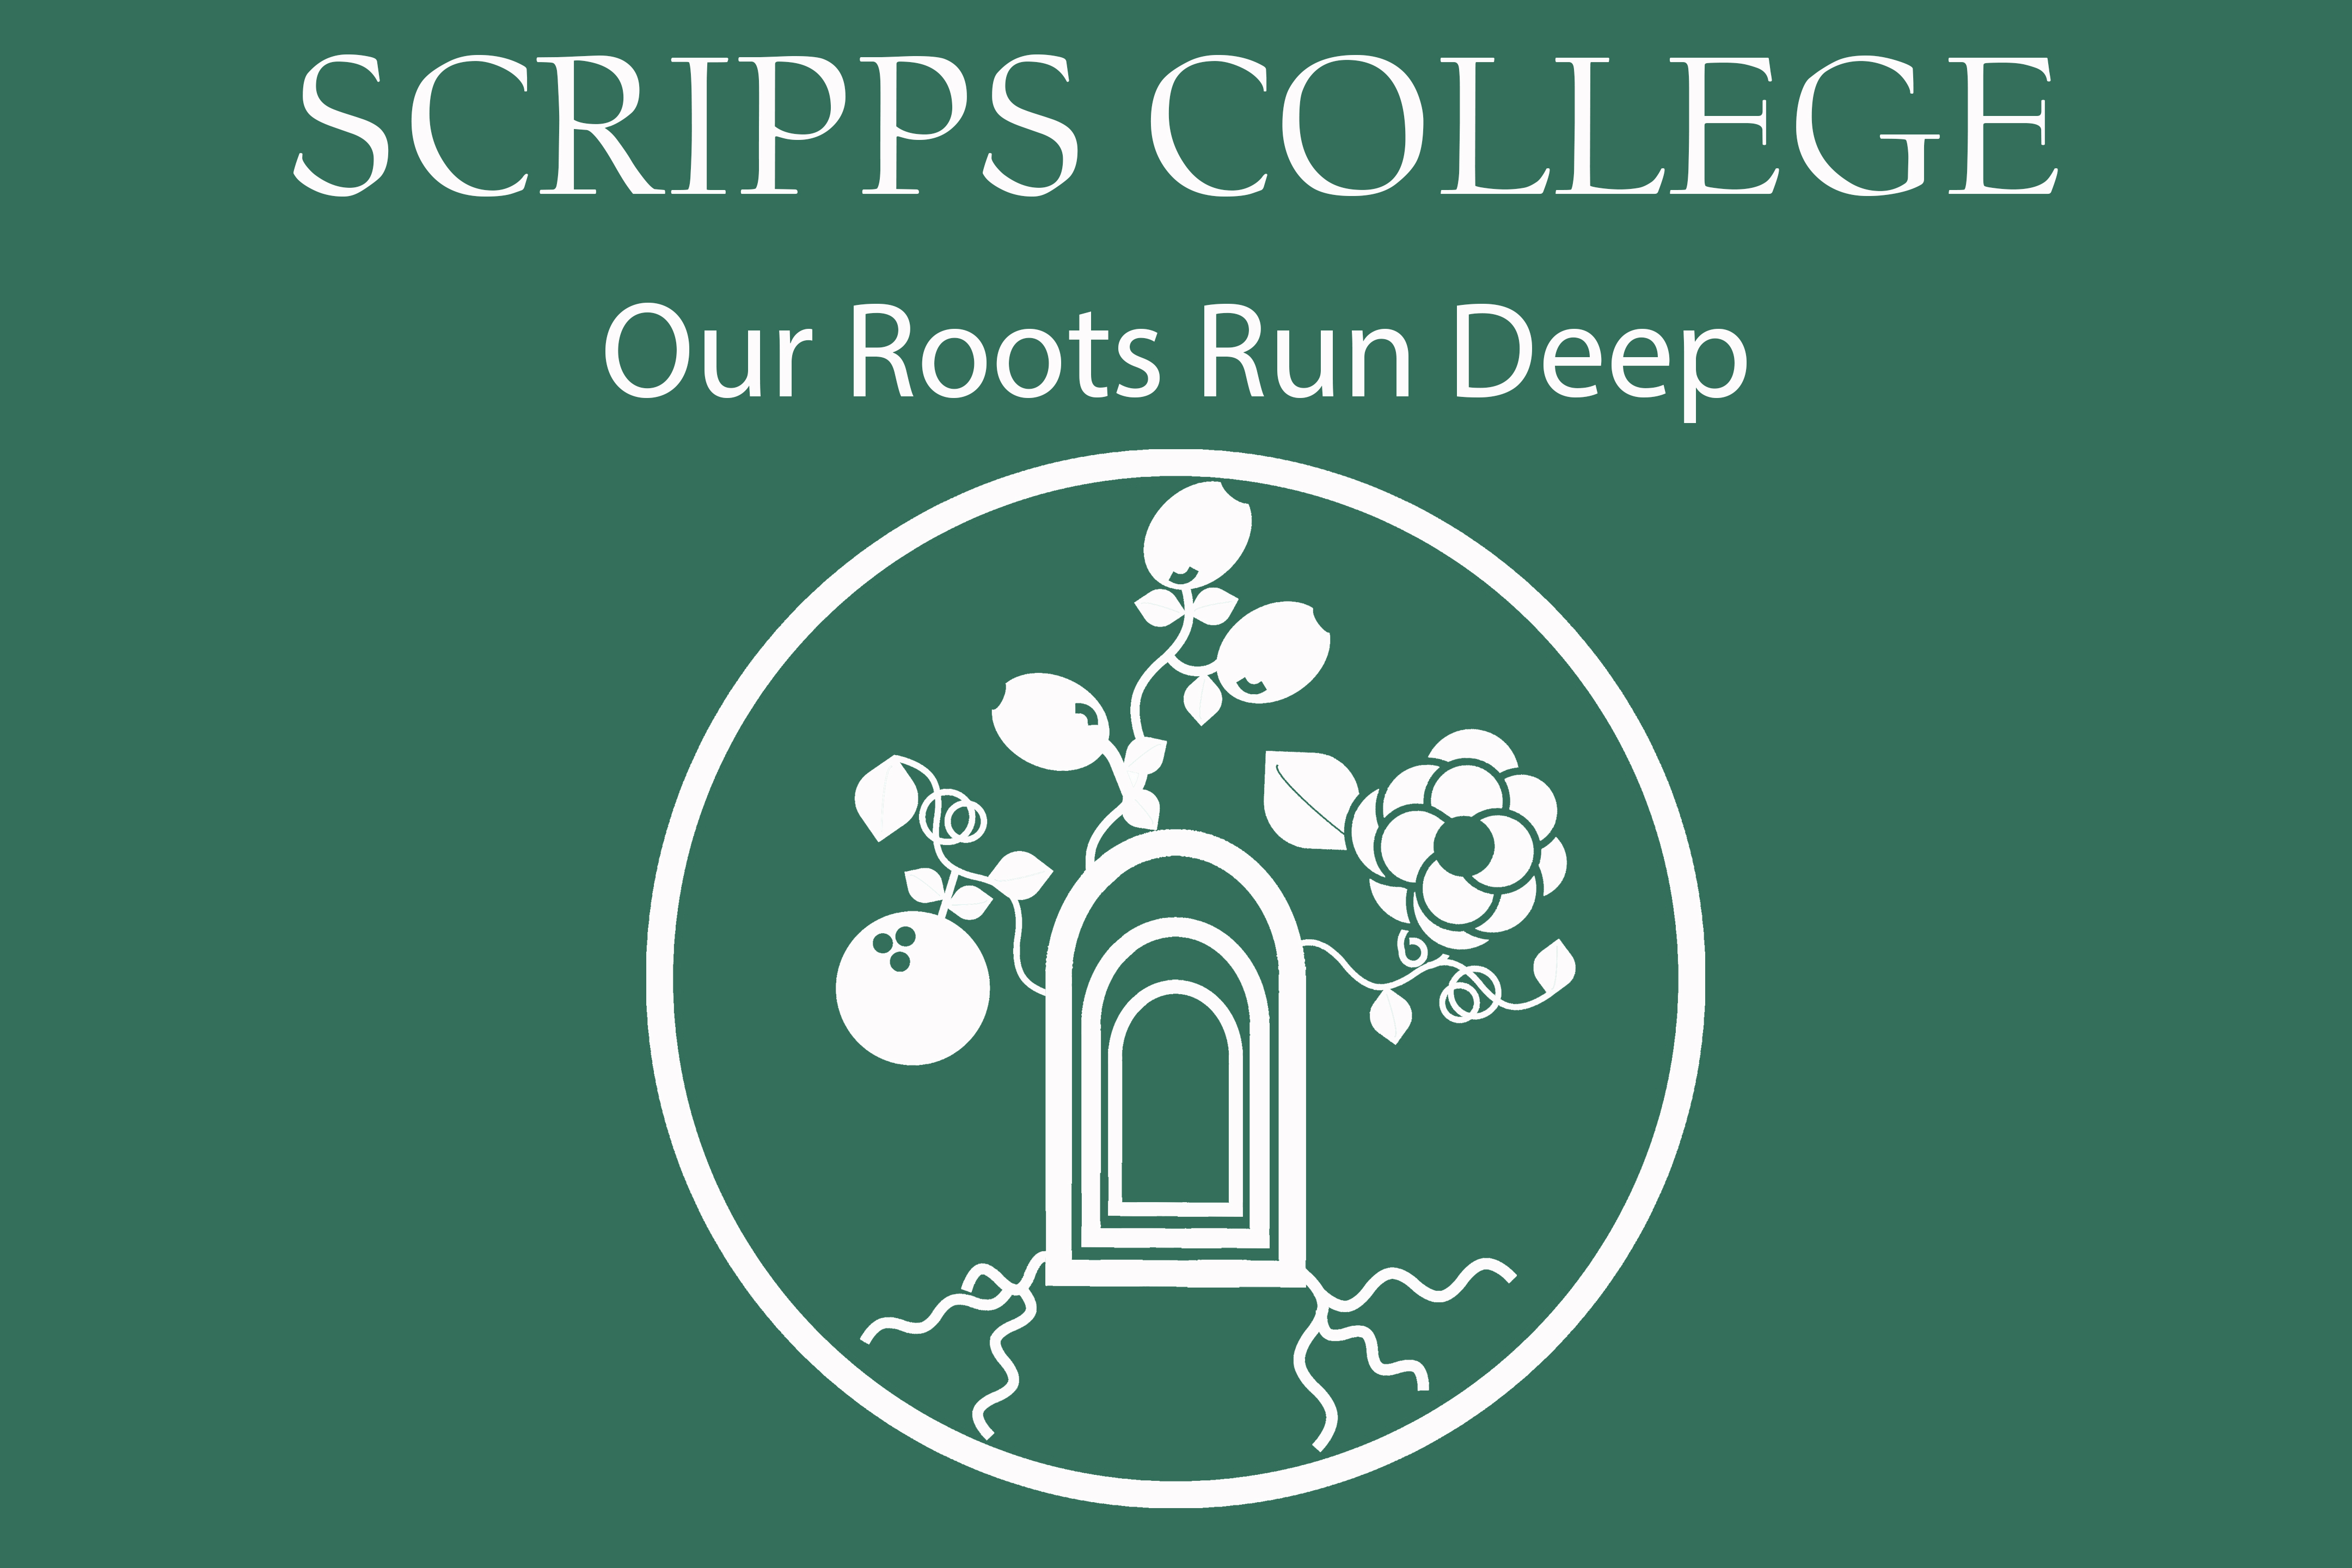 Give Back to Scripps During Our Final Day of Giving in 2016-2017. Our Roots Run Deep.